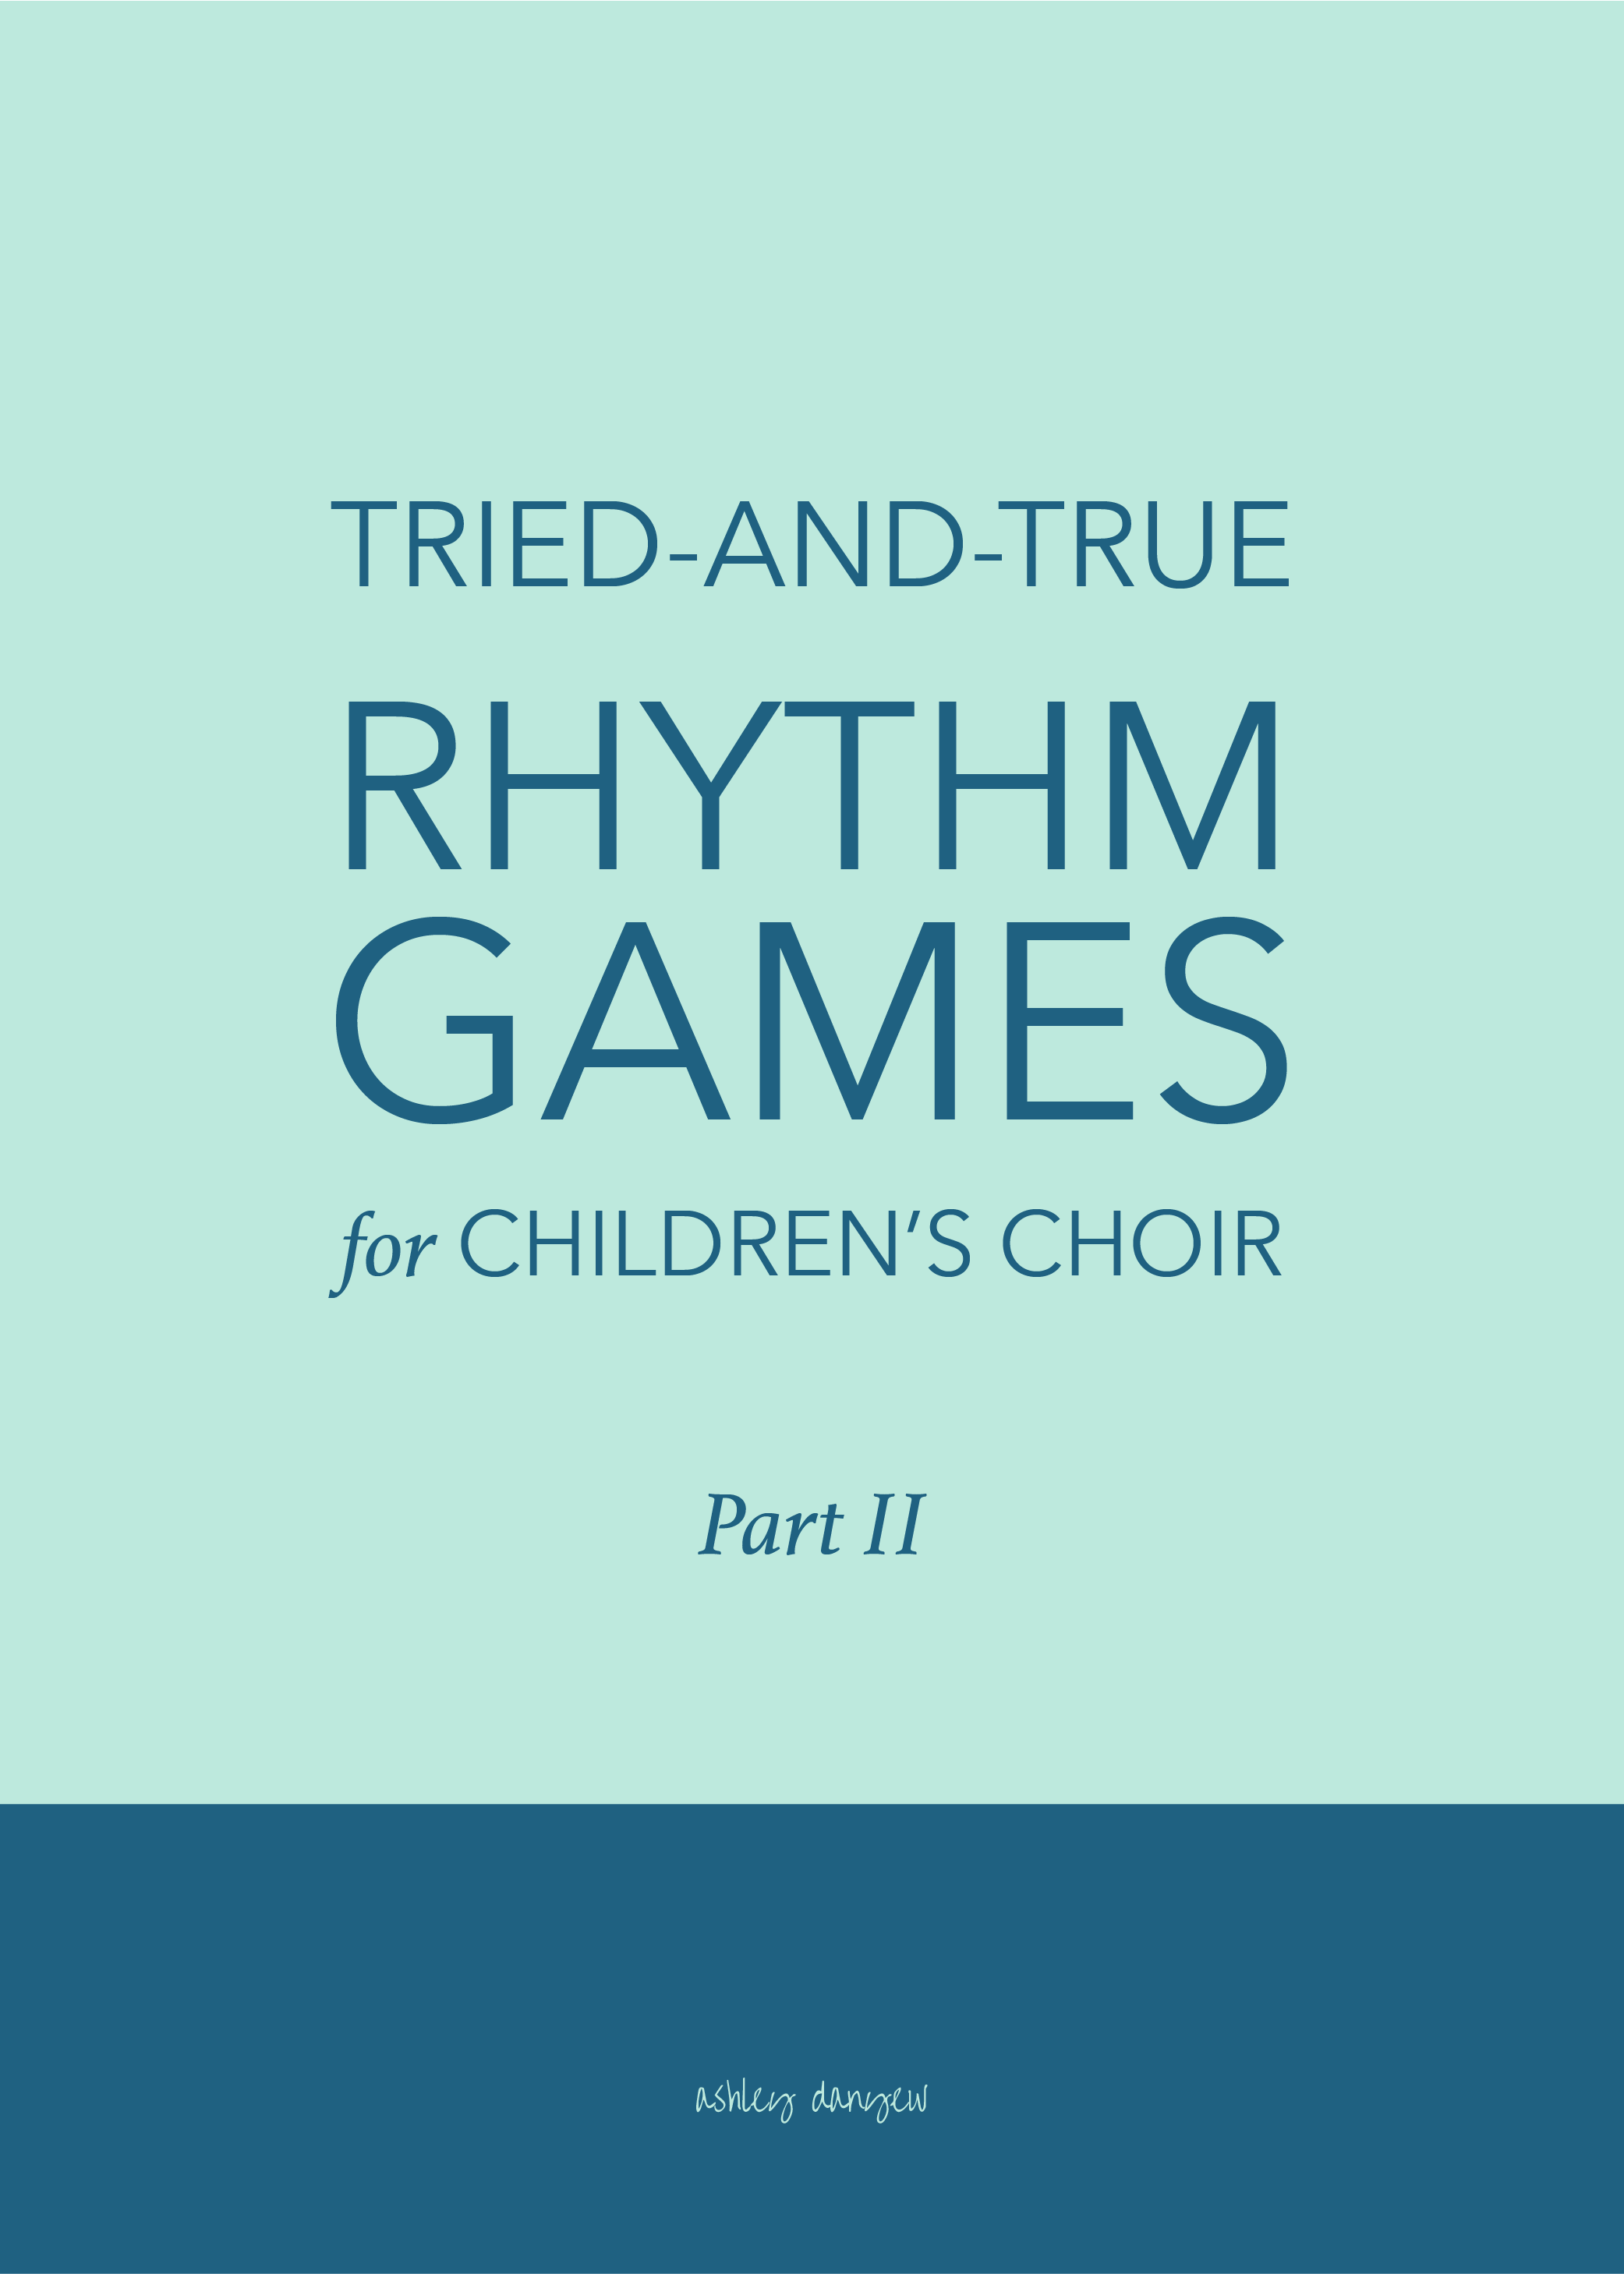 Tried-and-True-Rhythm-Games-for-Childrens-Choir-03.png